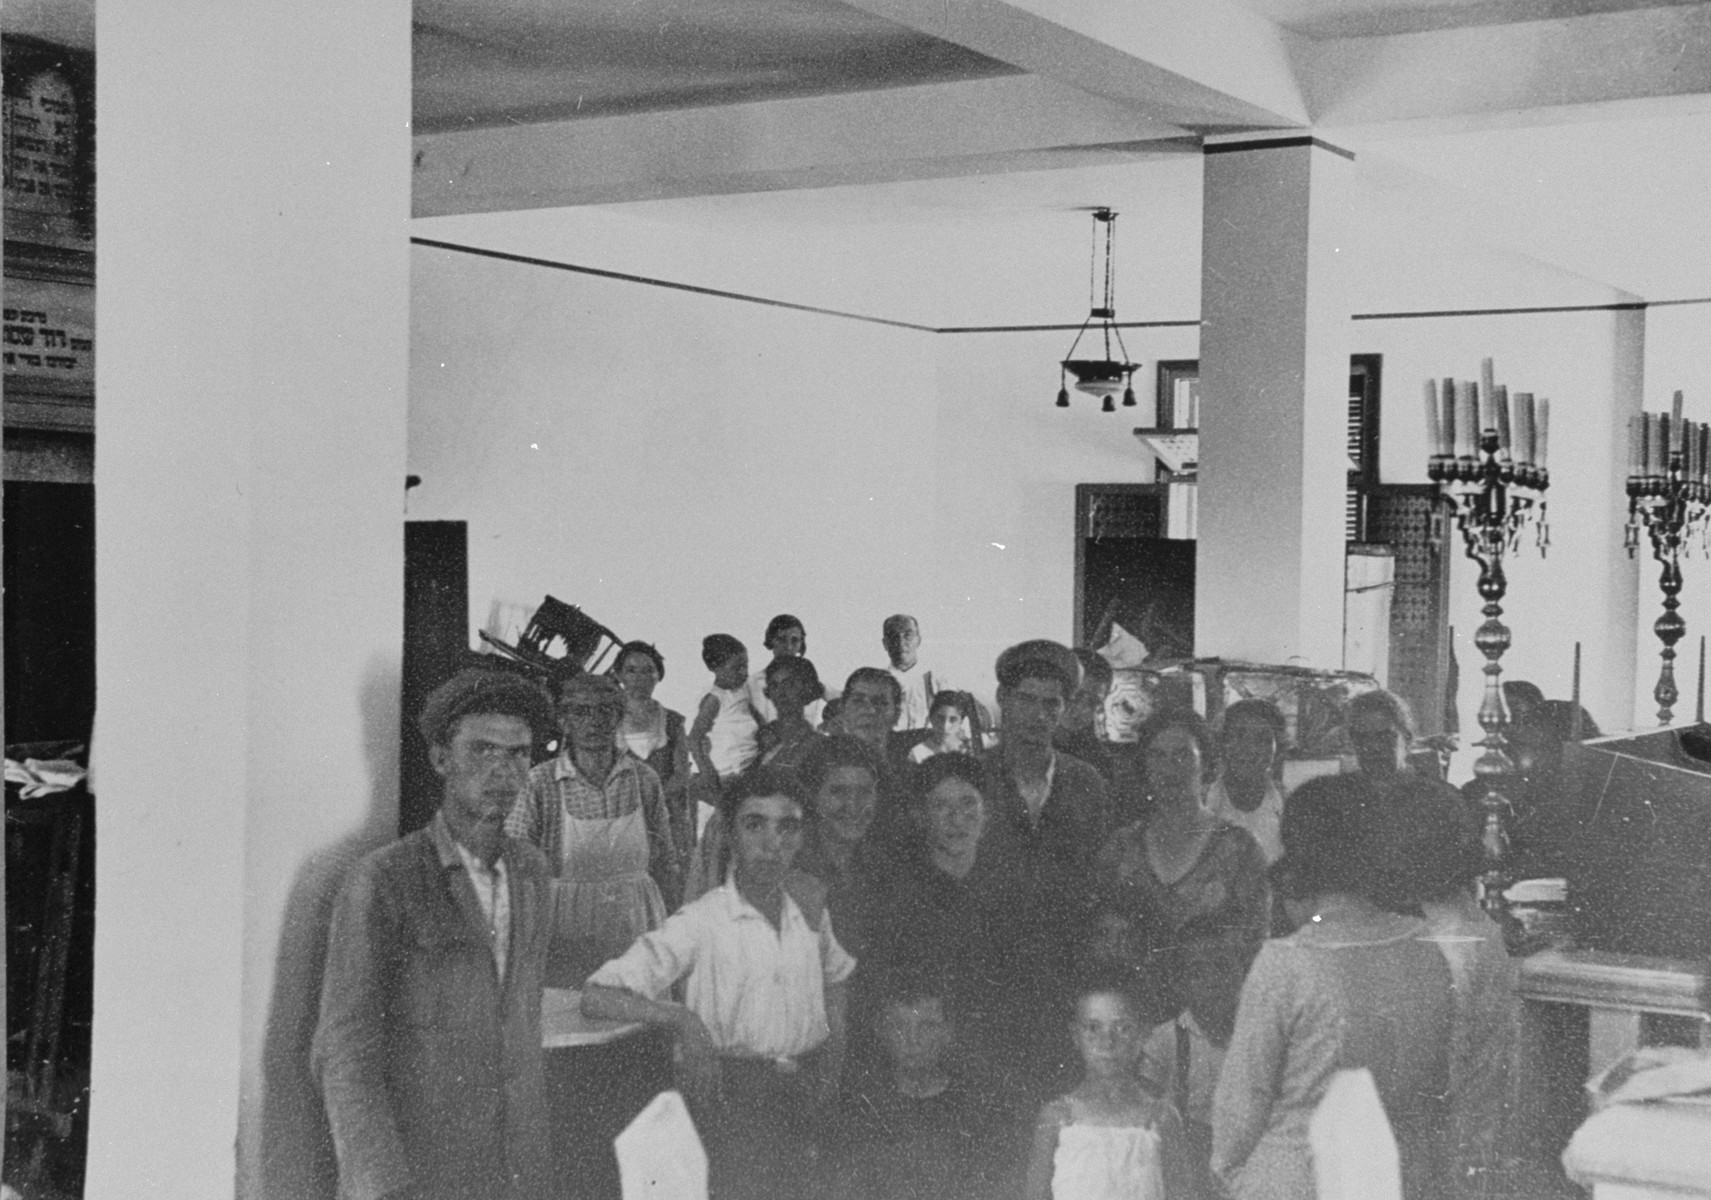 Jewish families take refuge in a  synagogue in Salonika after the pogrom at Camp Campbell.